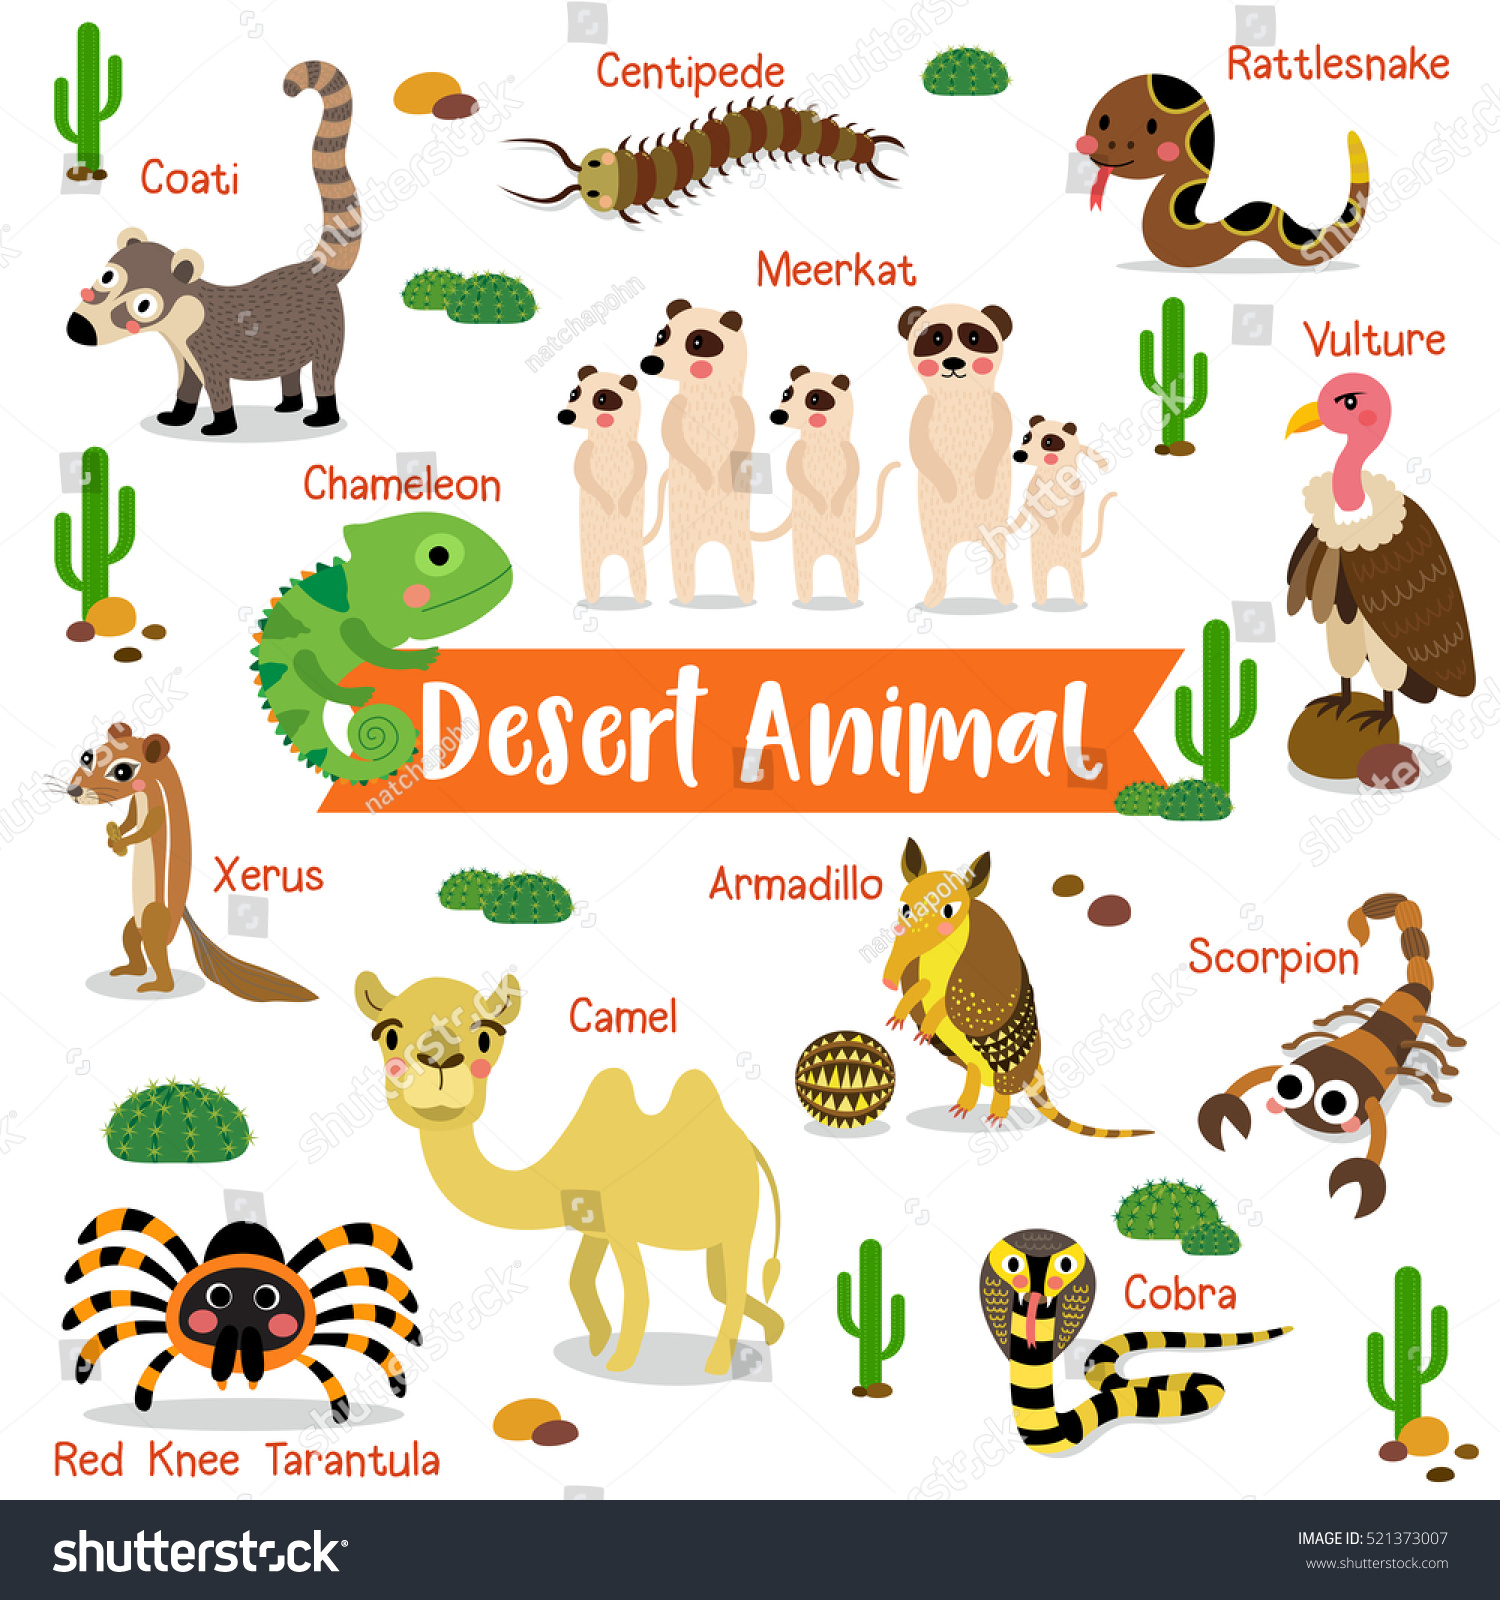 Desert animals pictures and names - photo#19